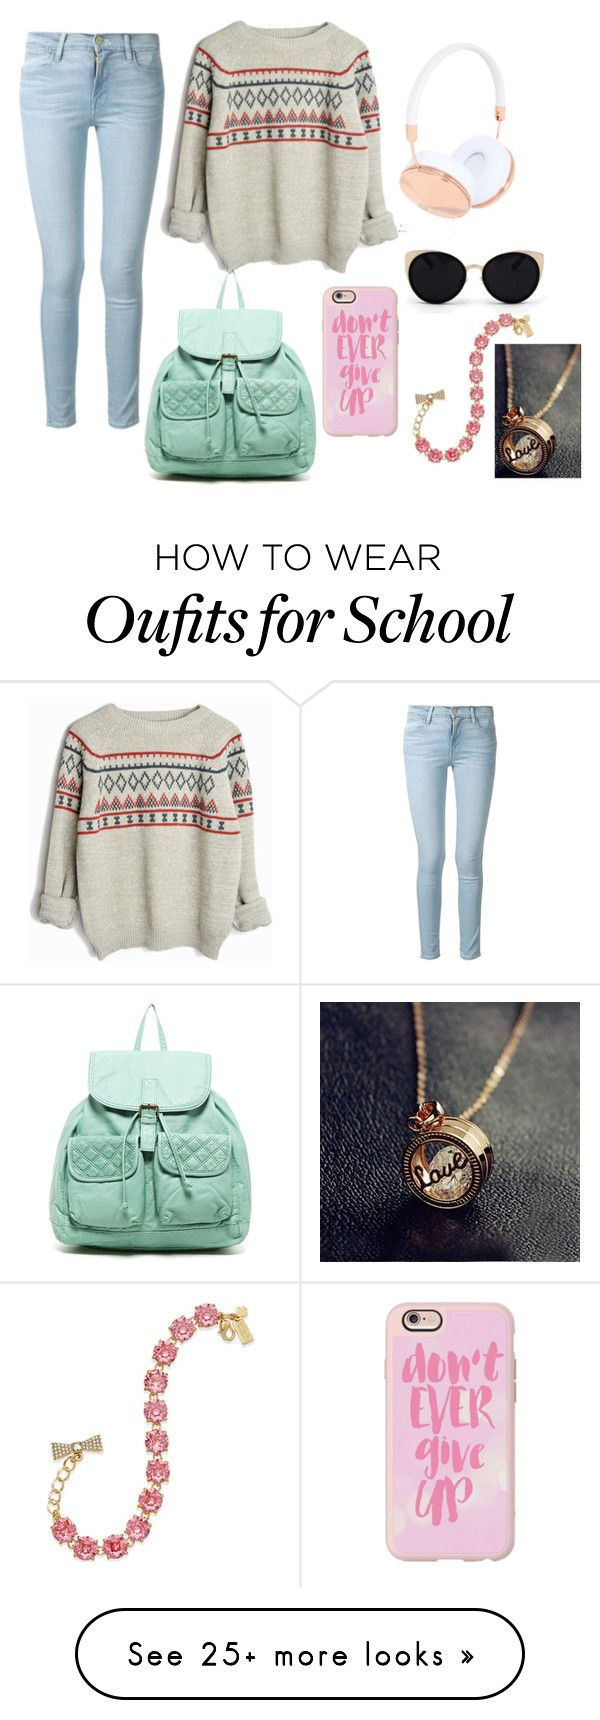 T shirt design 7 25xeps -  School _ 9_headphones By Marshmallowkuini On Polyvore Featuring Frame Denim T